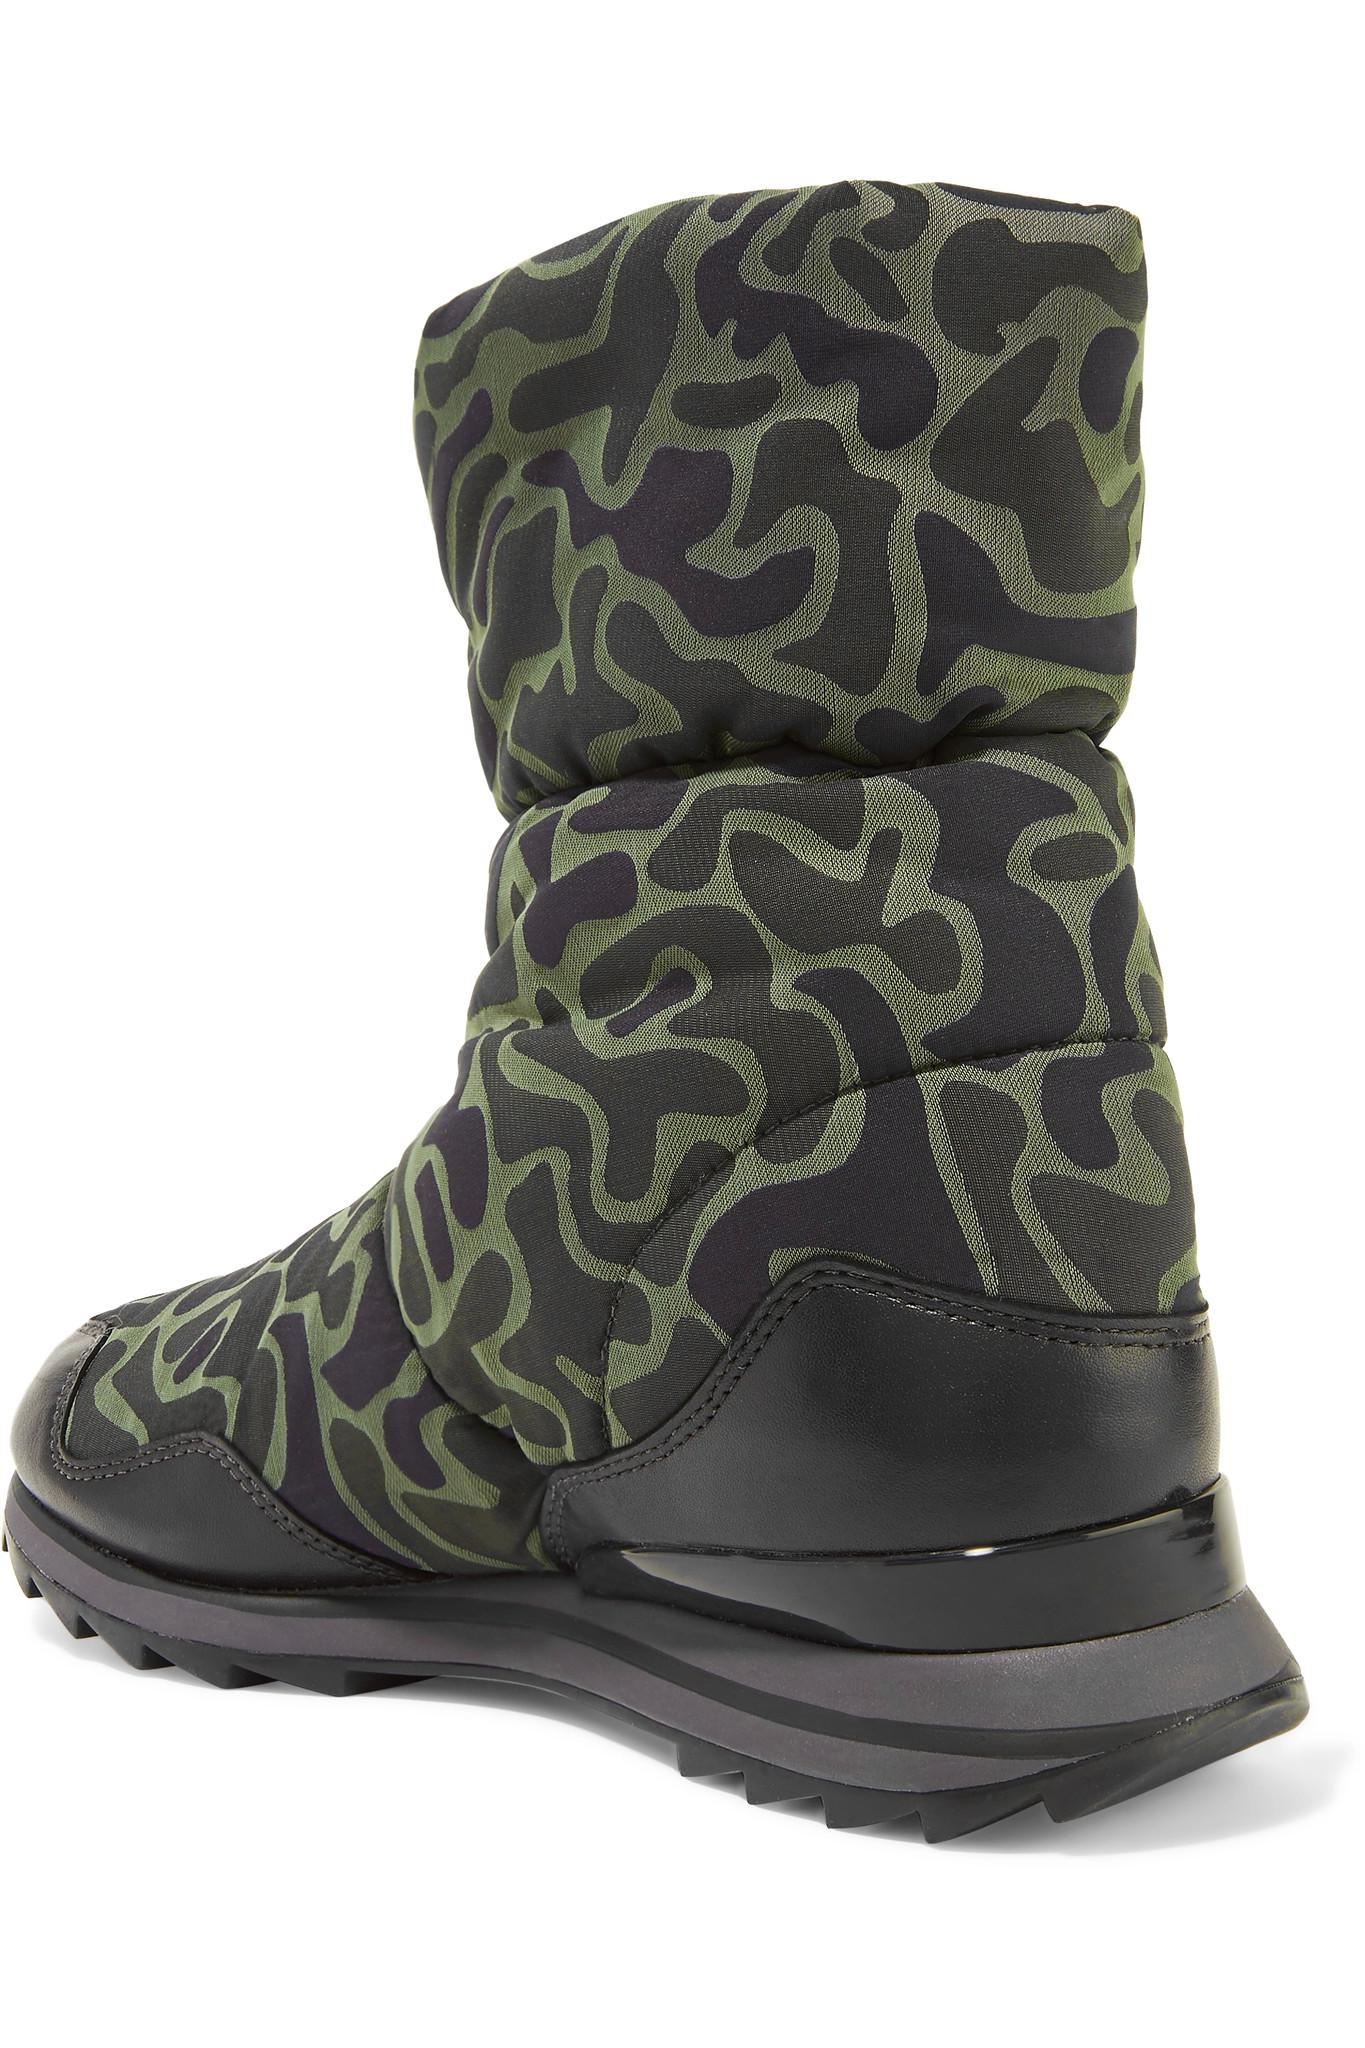 Y-3 + Adidas Originals Rhita Leather-trimmed Printed Quilted Shell ... : adidas quilted boots - Adamdwight.com